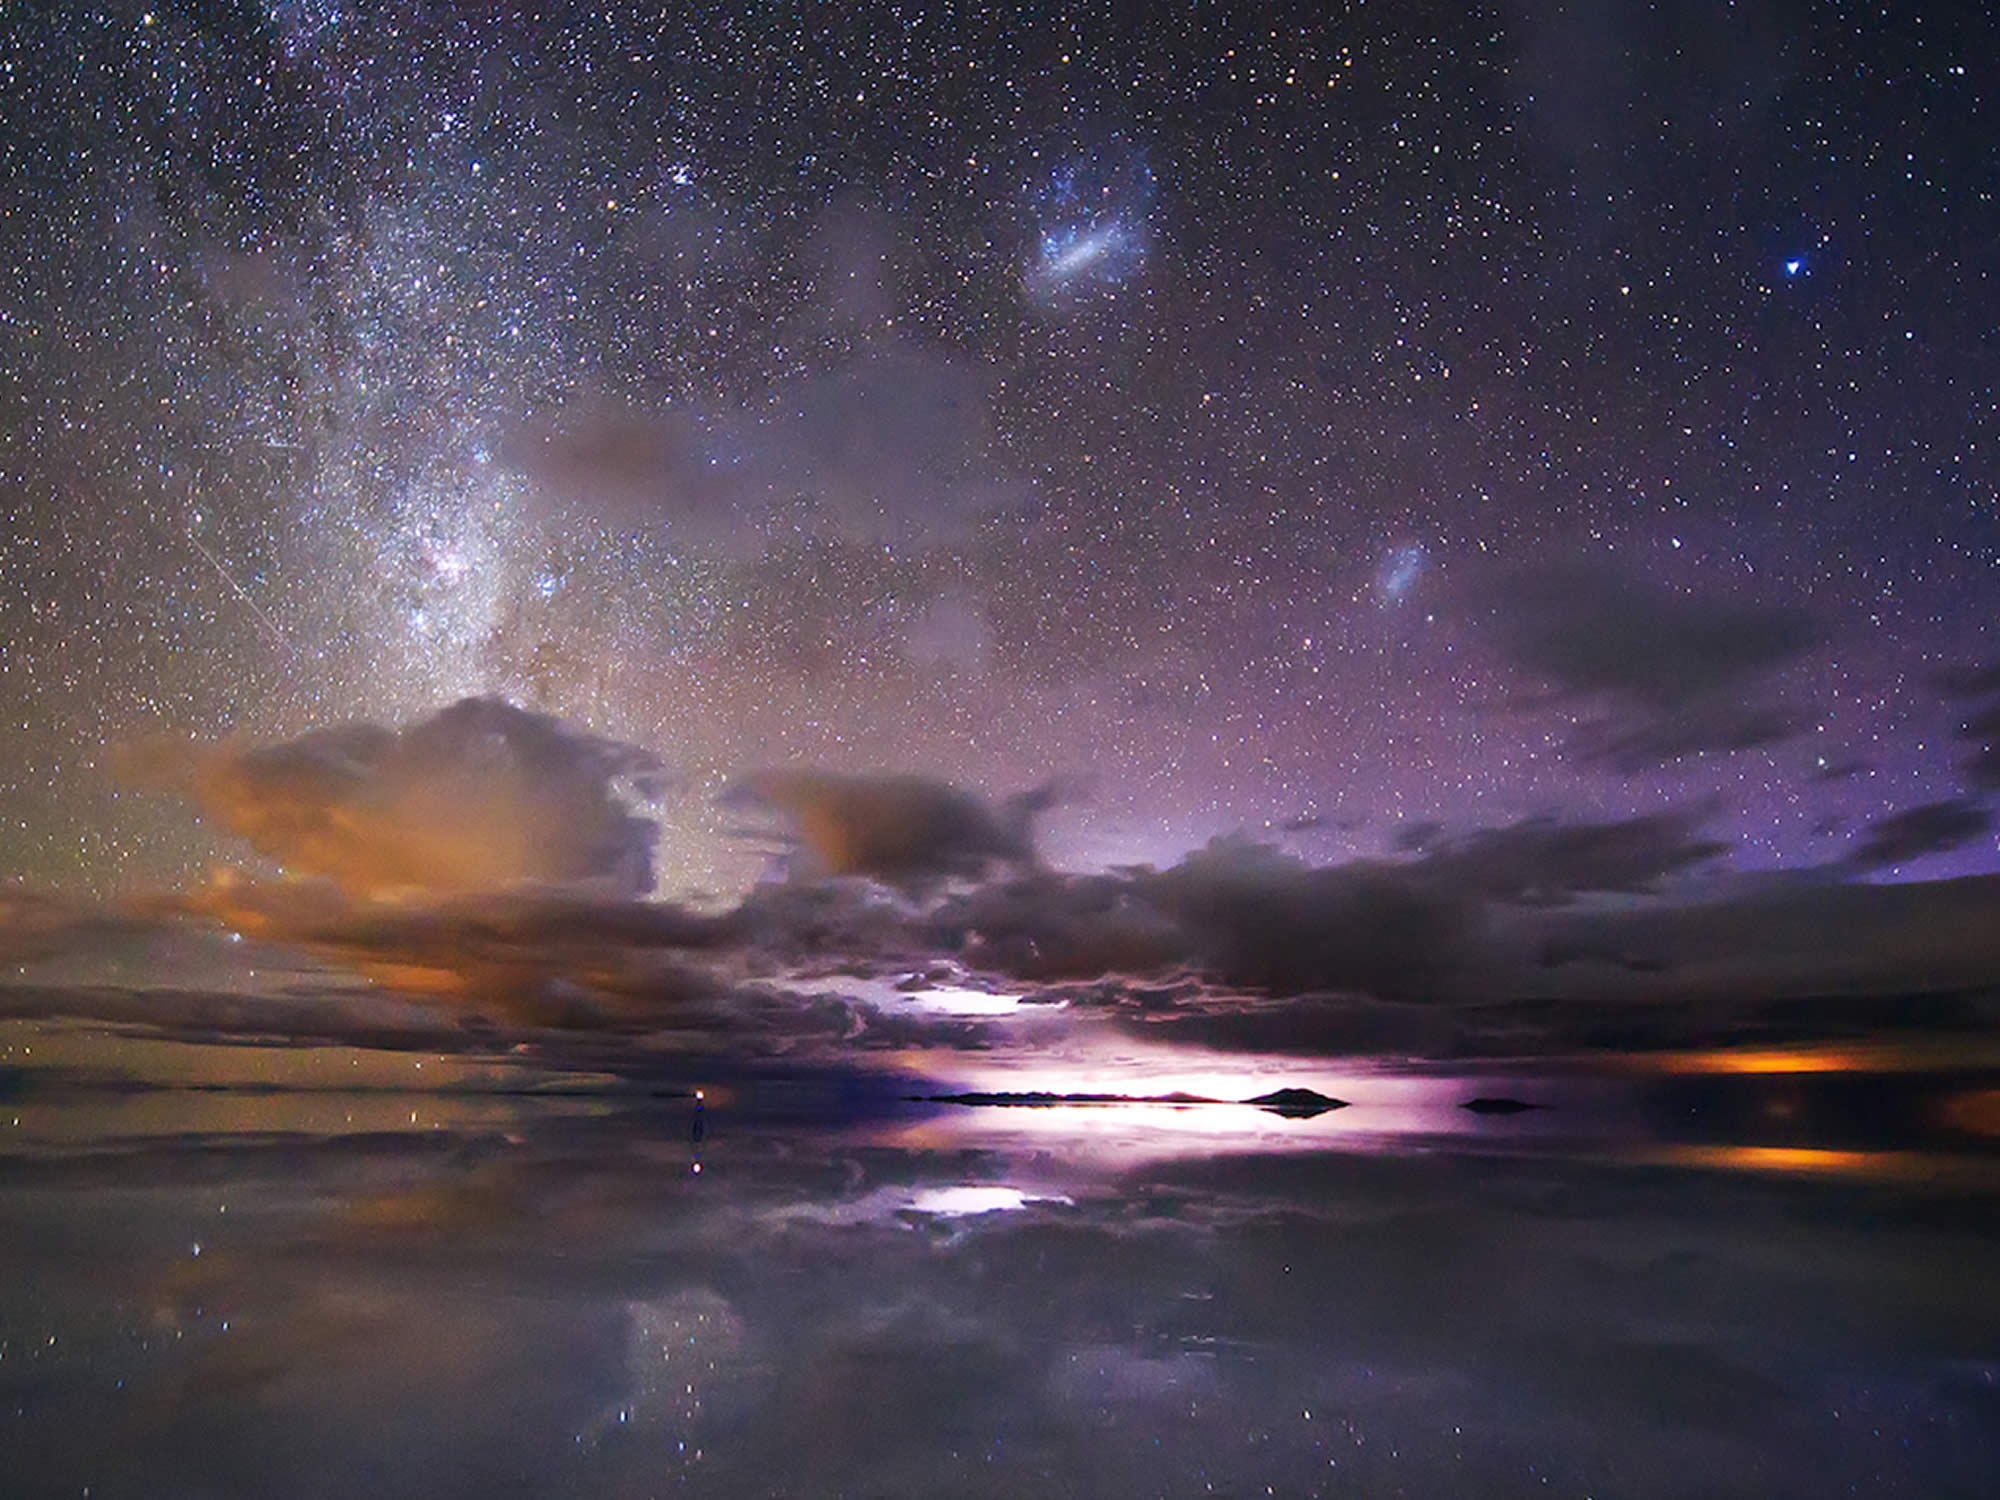 Colours and stars in the salt flat